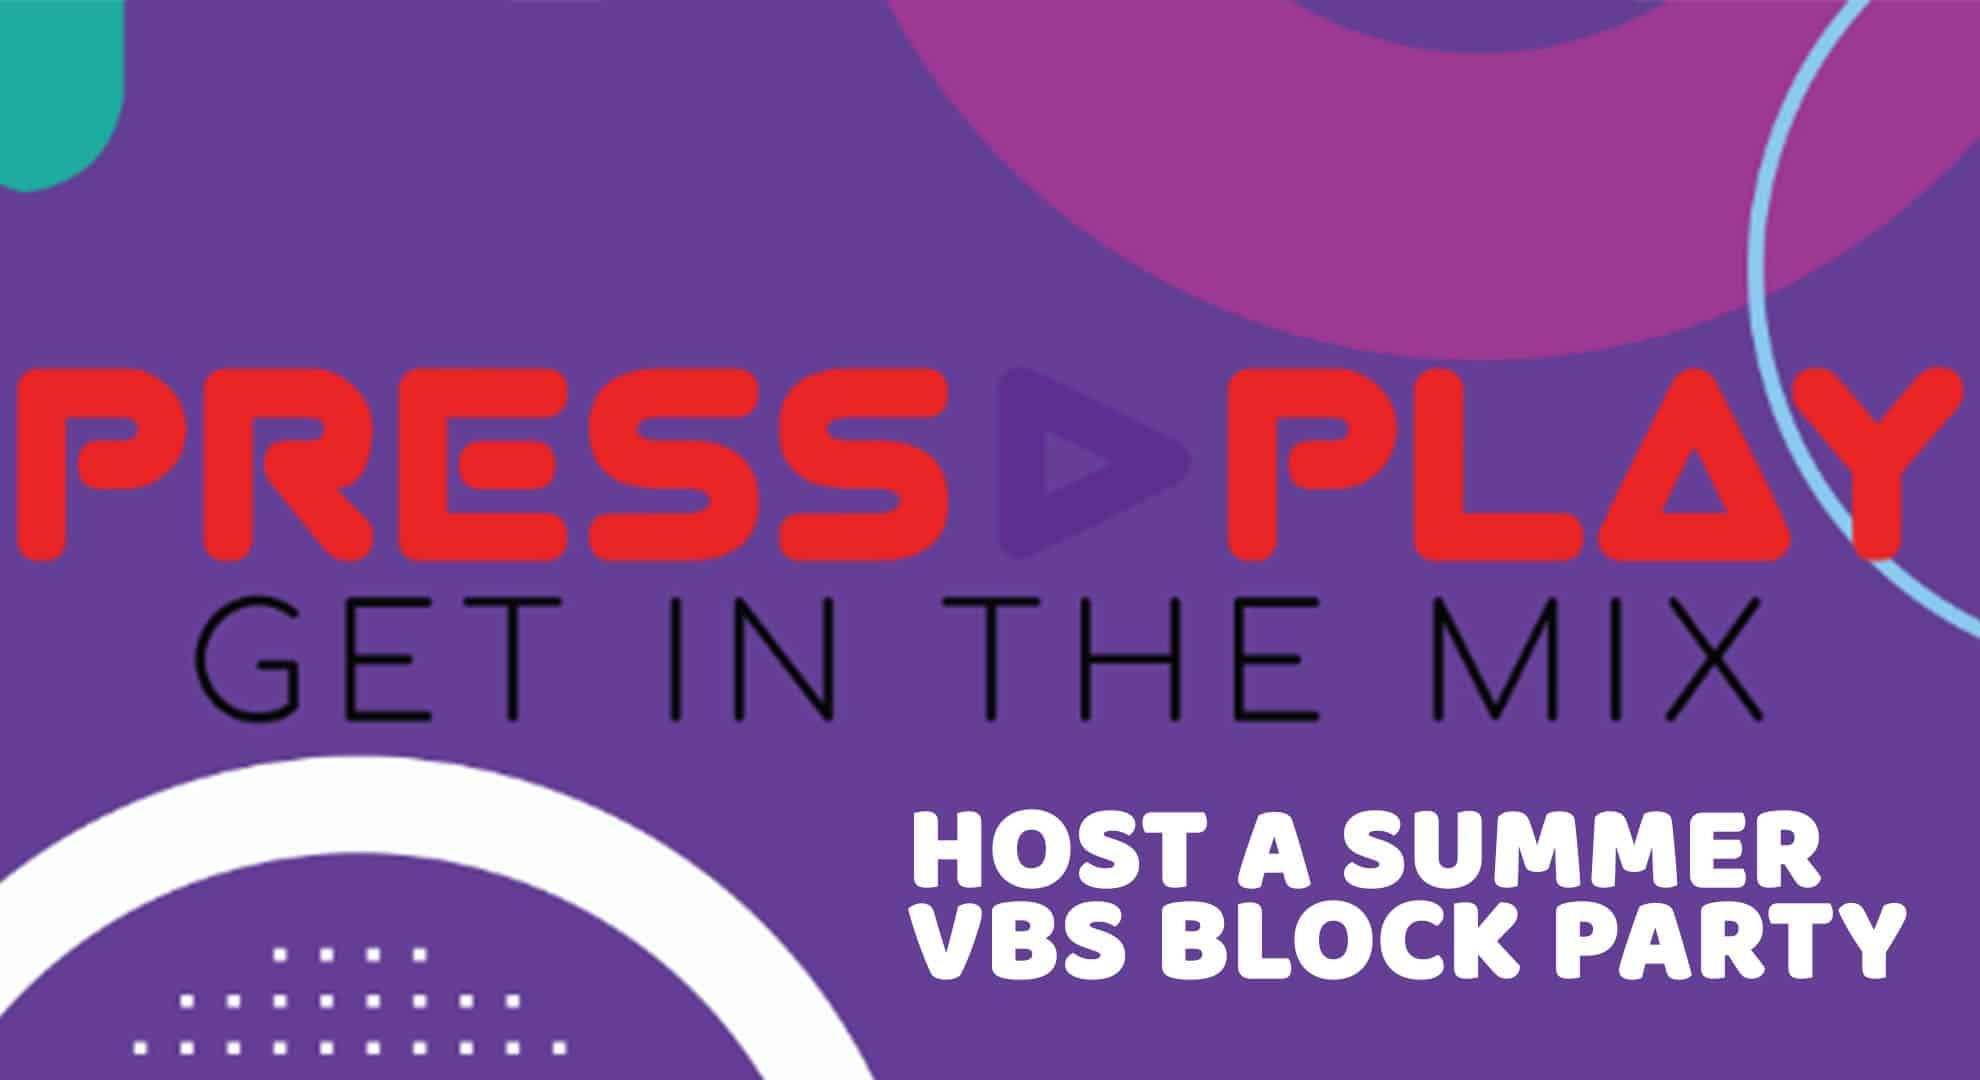 Promotional Graphic for Schweitzer Kids' VBS Block Parties